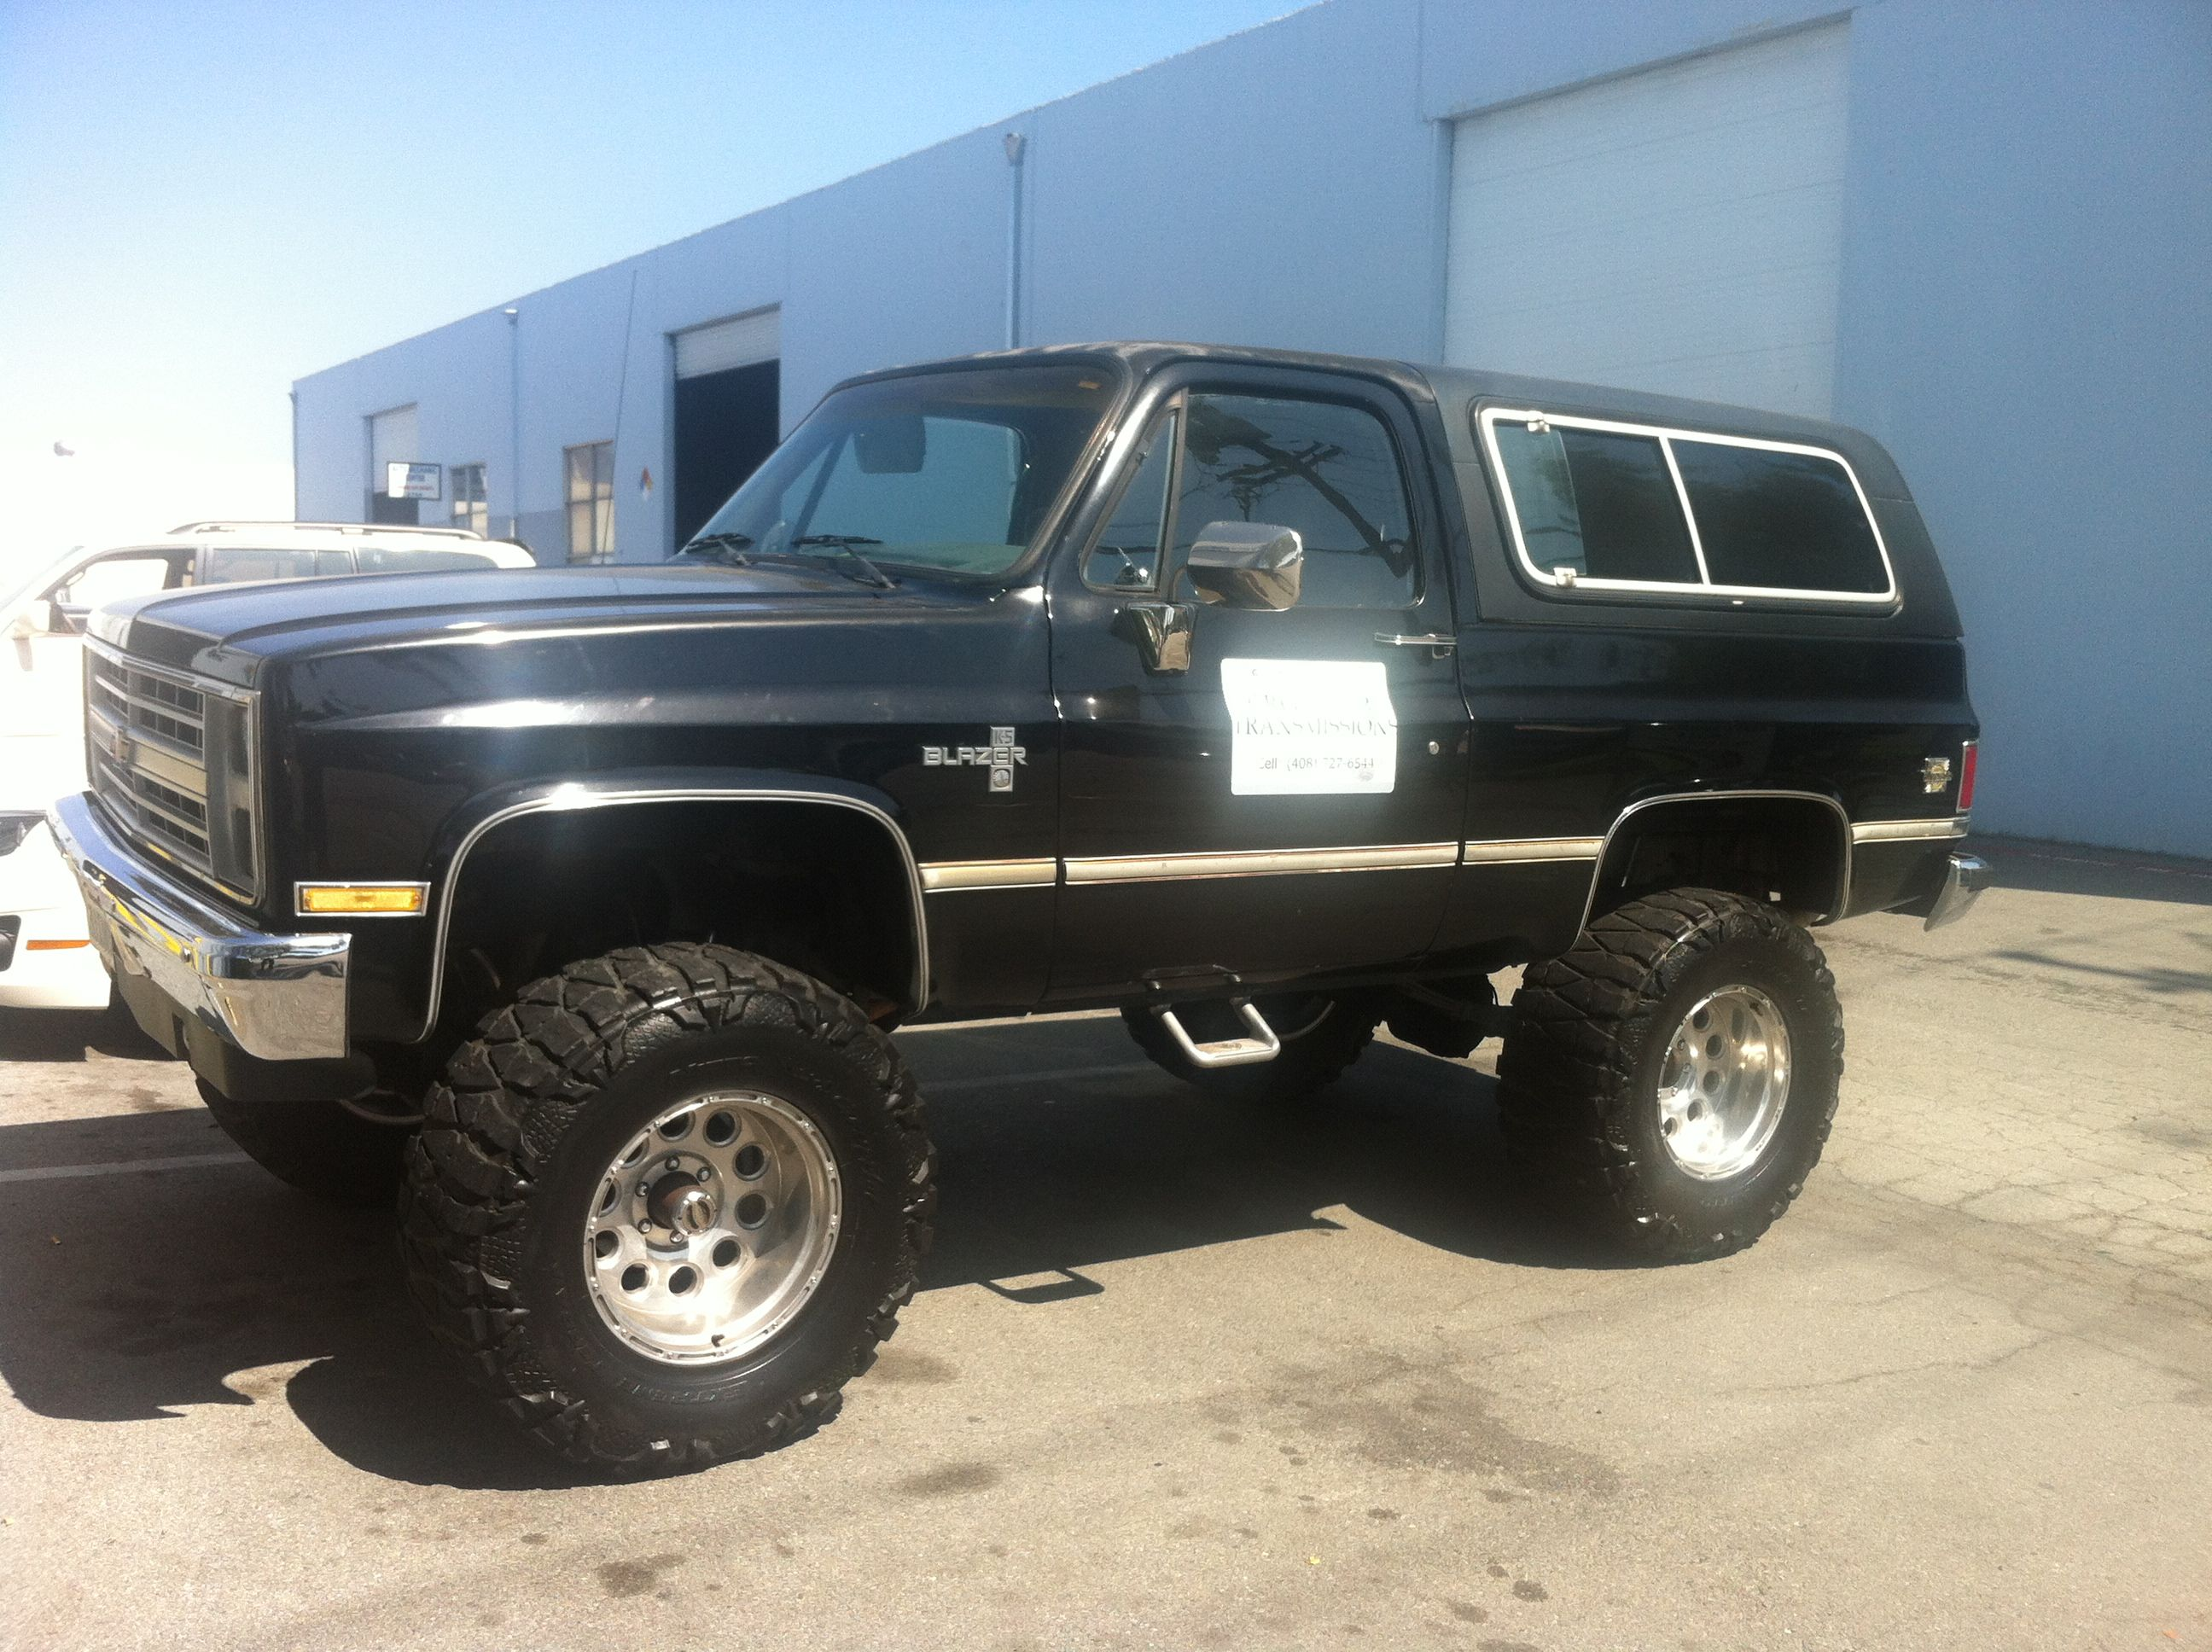 1987 Chevy Blazer For Sale 8000 Big Chevy Trucks Lifted Chevy